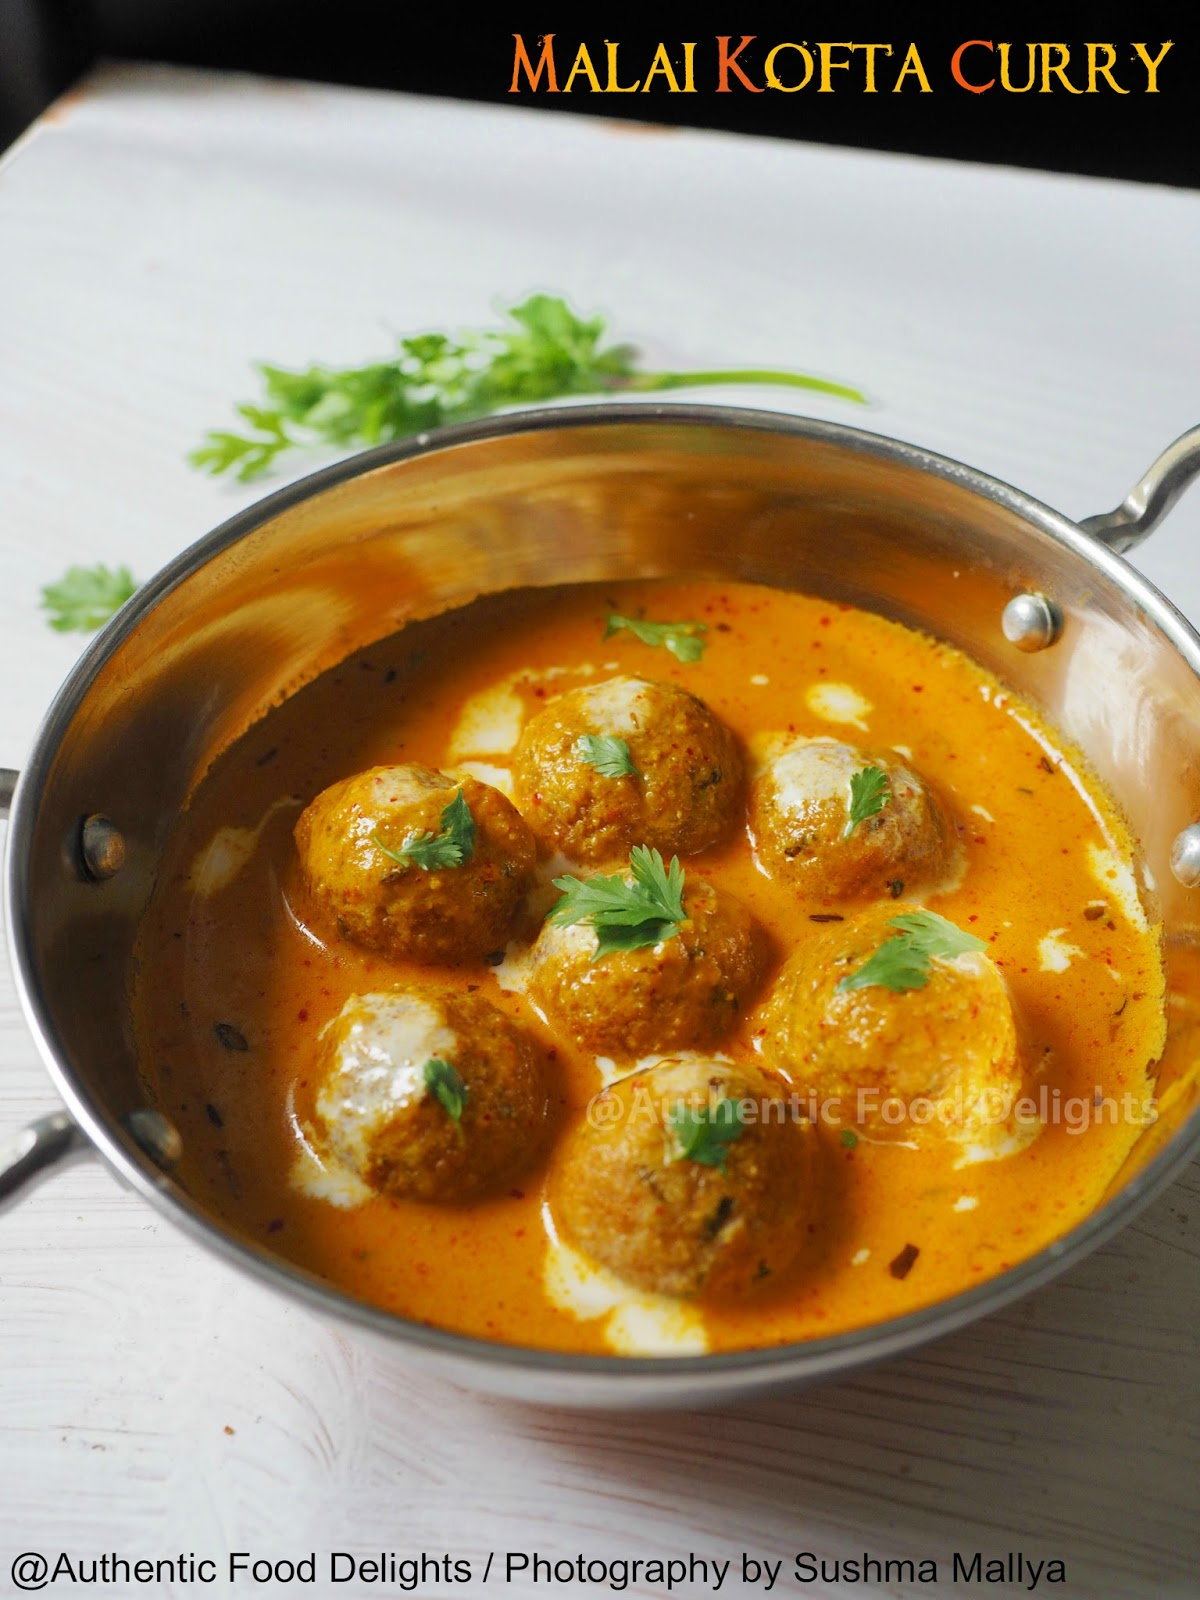 Authentic food delights malai kofta curry i simply love paneer kofta curry with naan is def one of my most fav combo i am sure most of them have their own version of this recipe forumfinder Choice Image